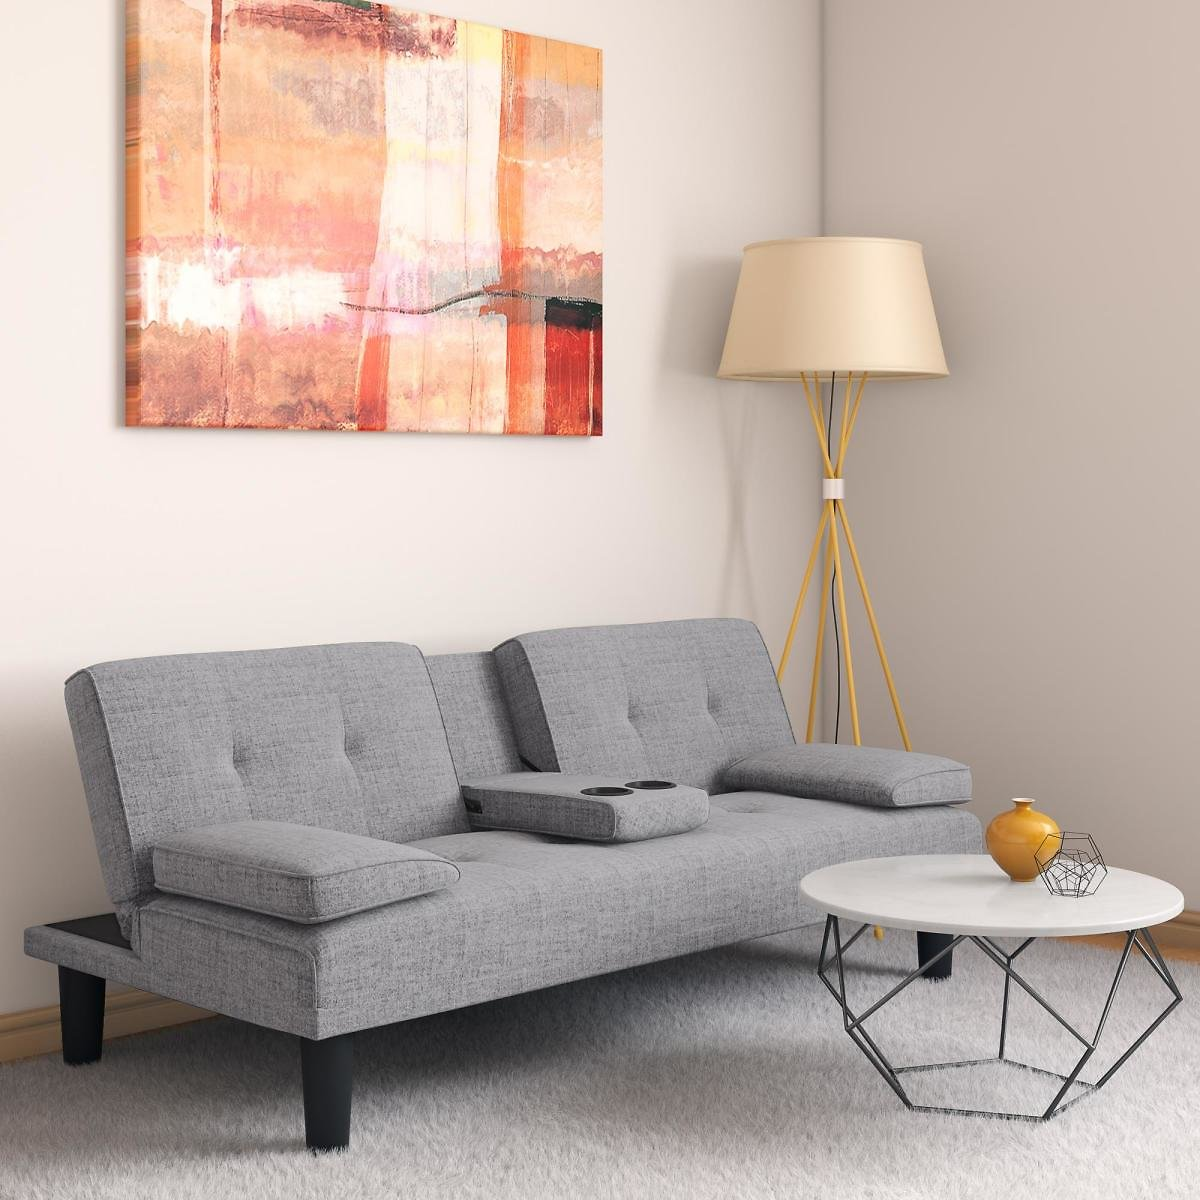 DHP Marley Sofa Sleeper Cupholder Futon with 2 Pillows in Grey Linen